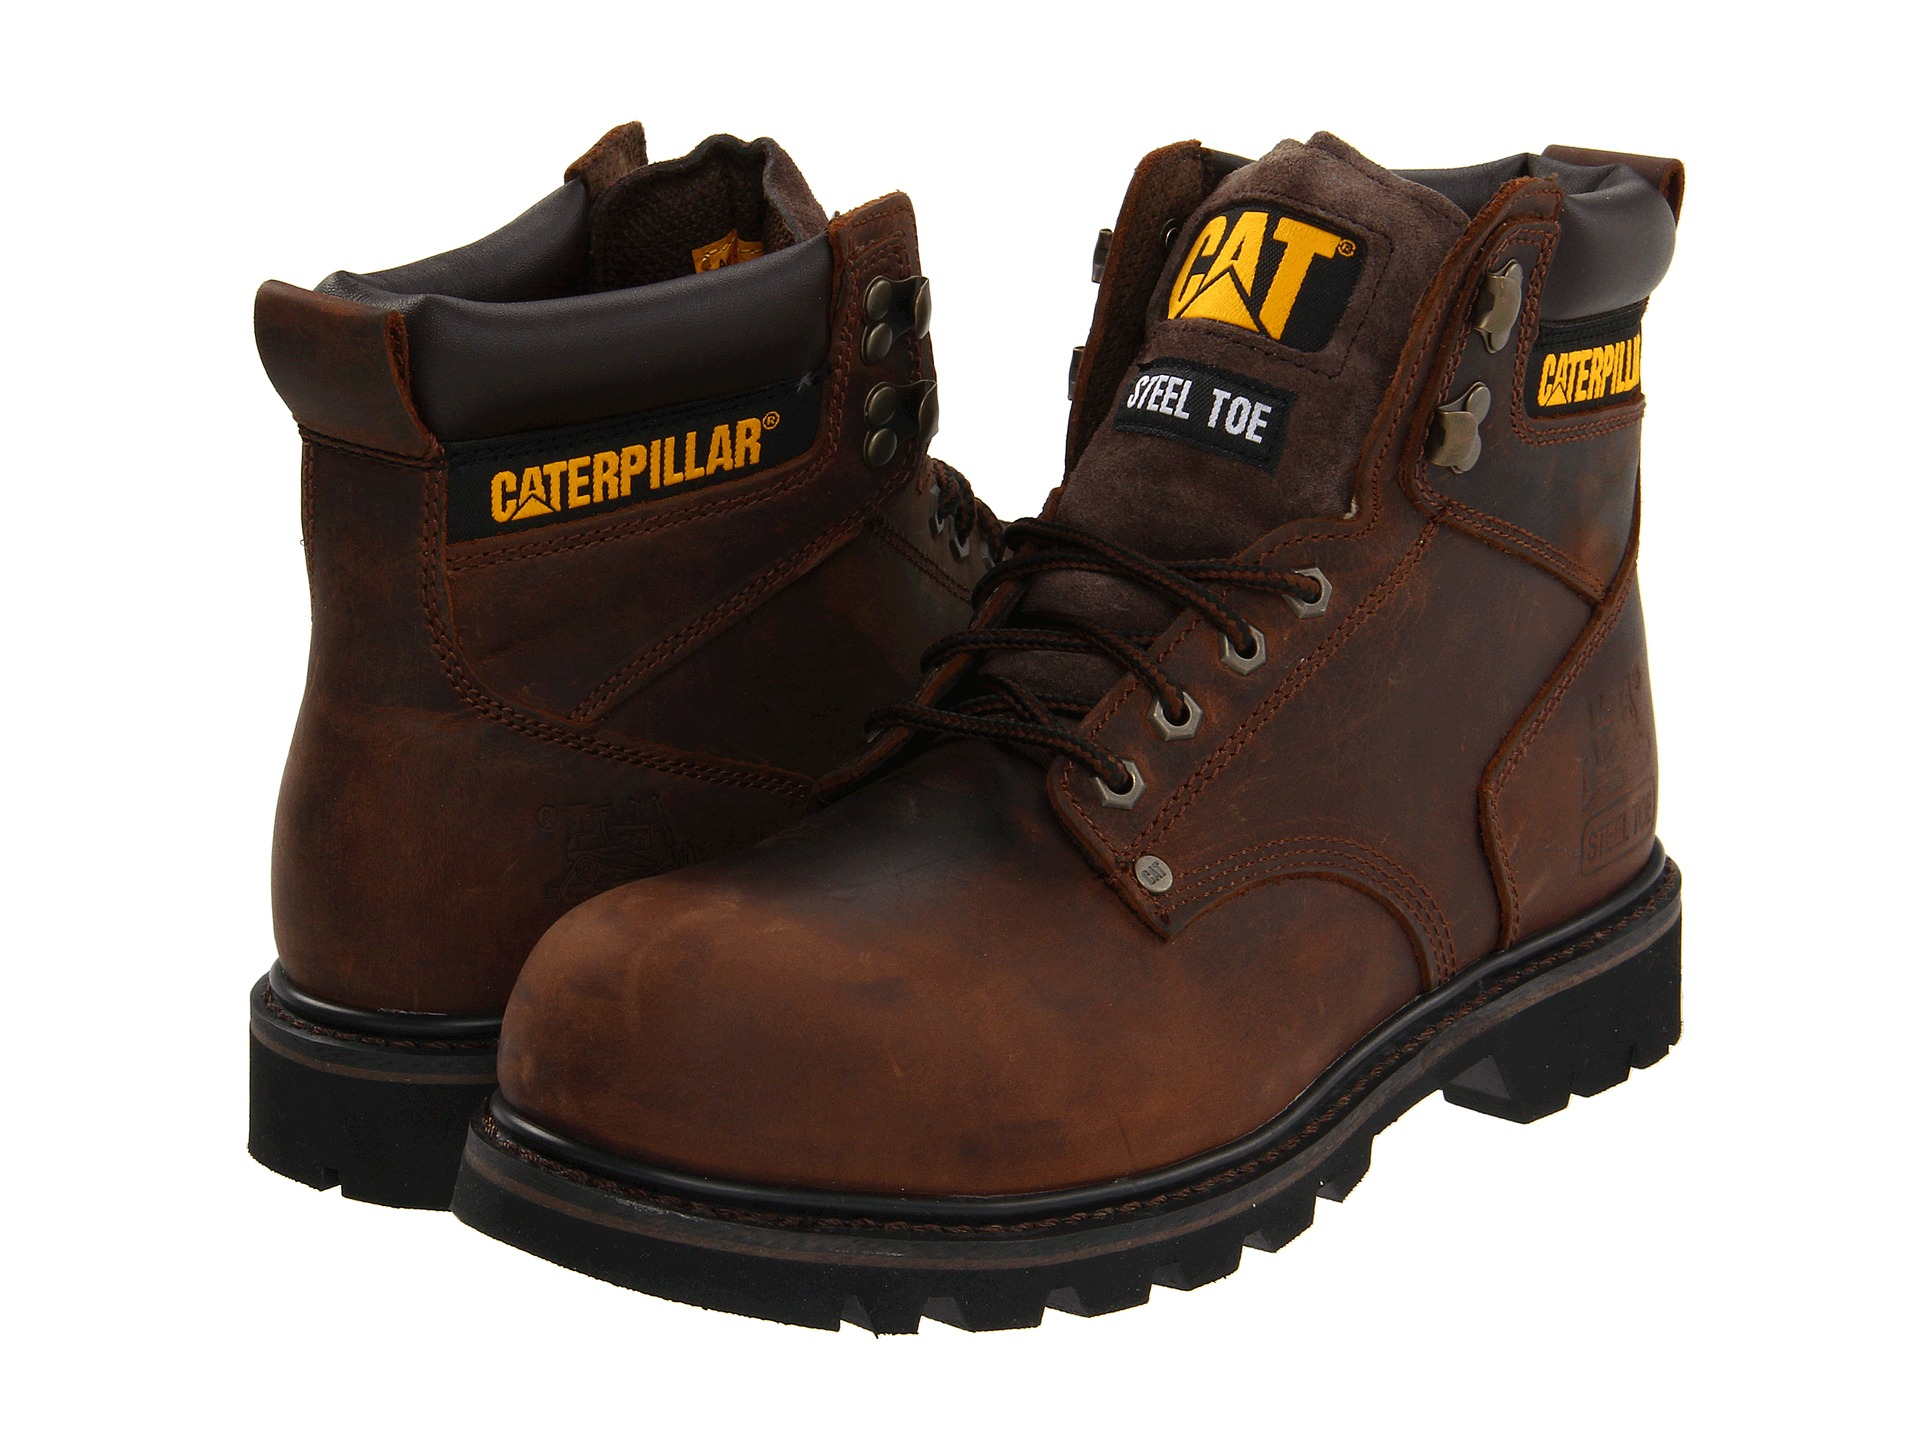 Caterpillar 2nd Shift Steel Toe - Zappos.com Free Shipping BOTH Ways